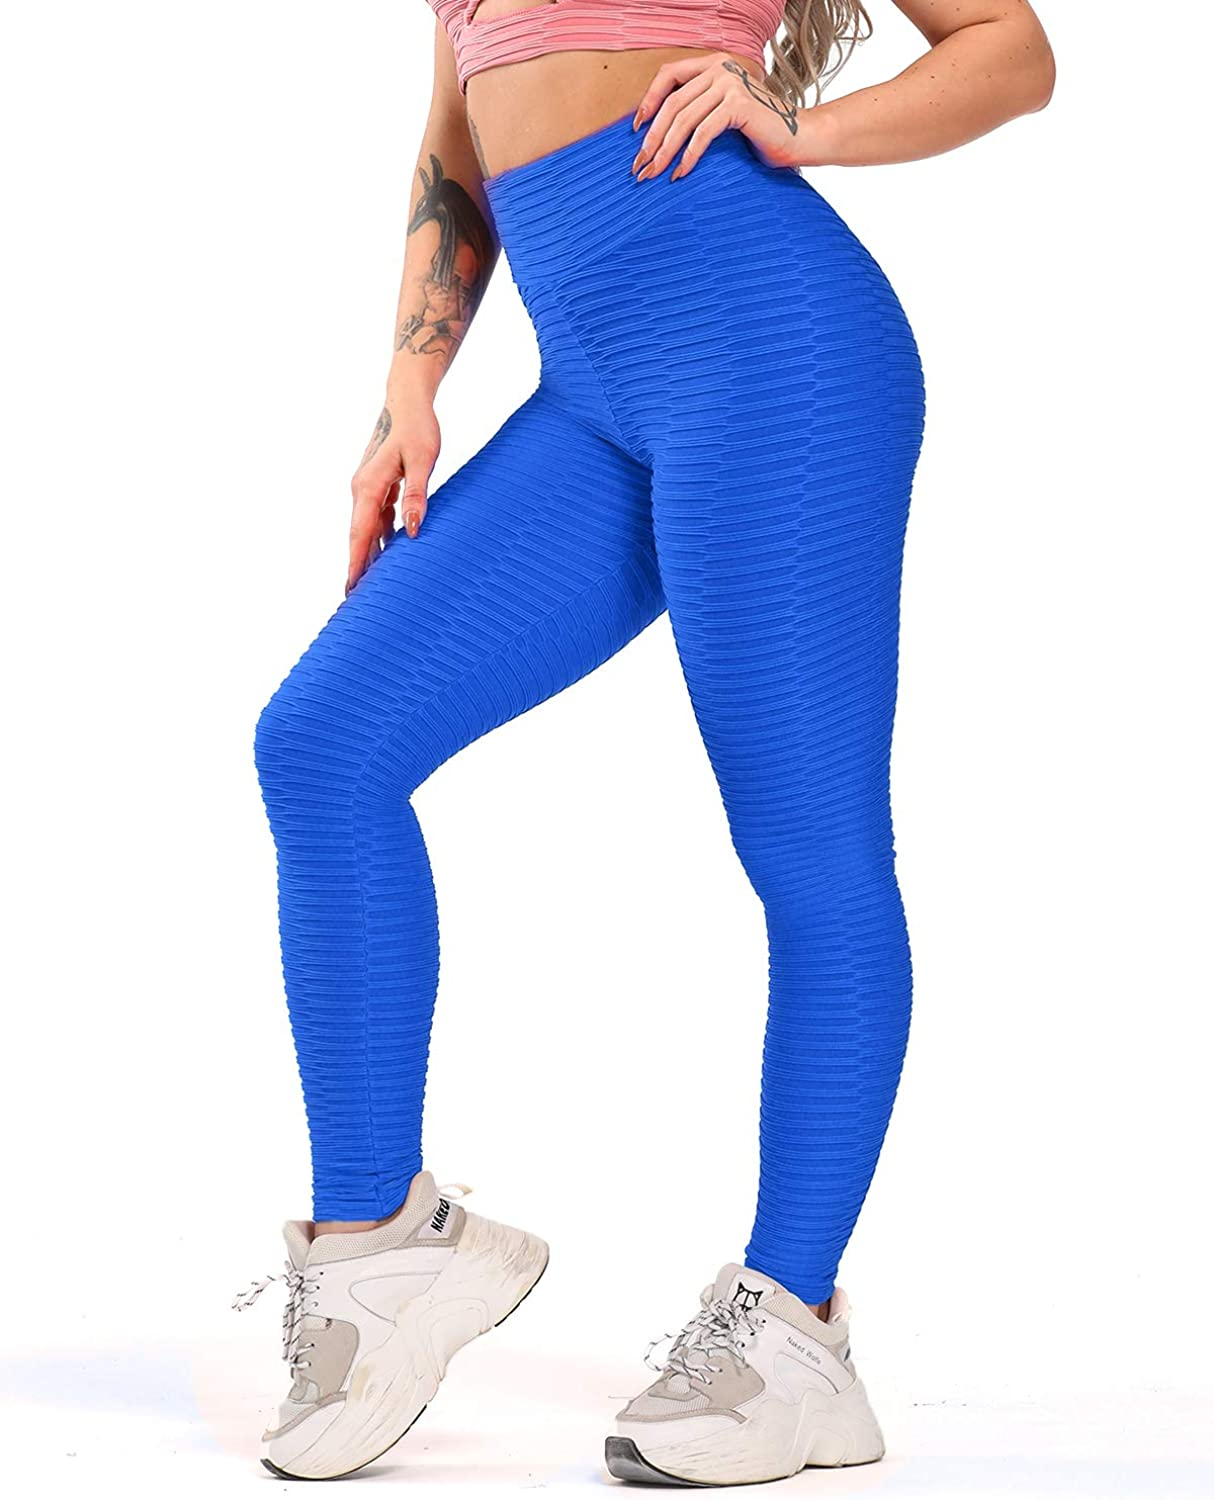 YOFIT Women Ruched Butt Yoga Pants Lifting Leggings High Waisted with Pockets Sport Tummy Control Gym